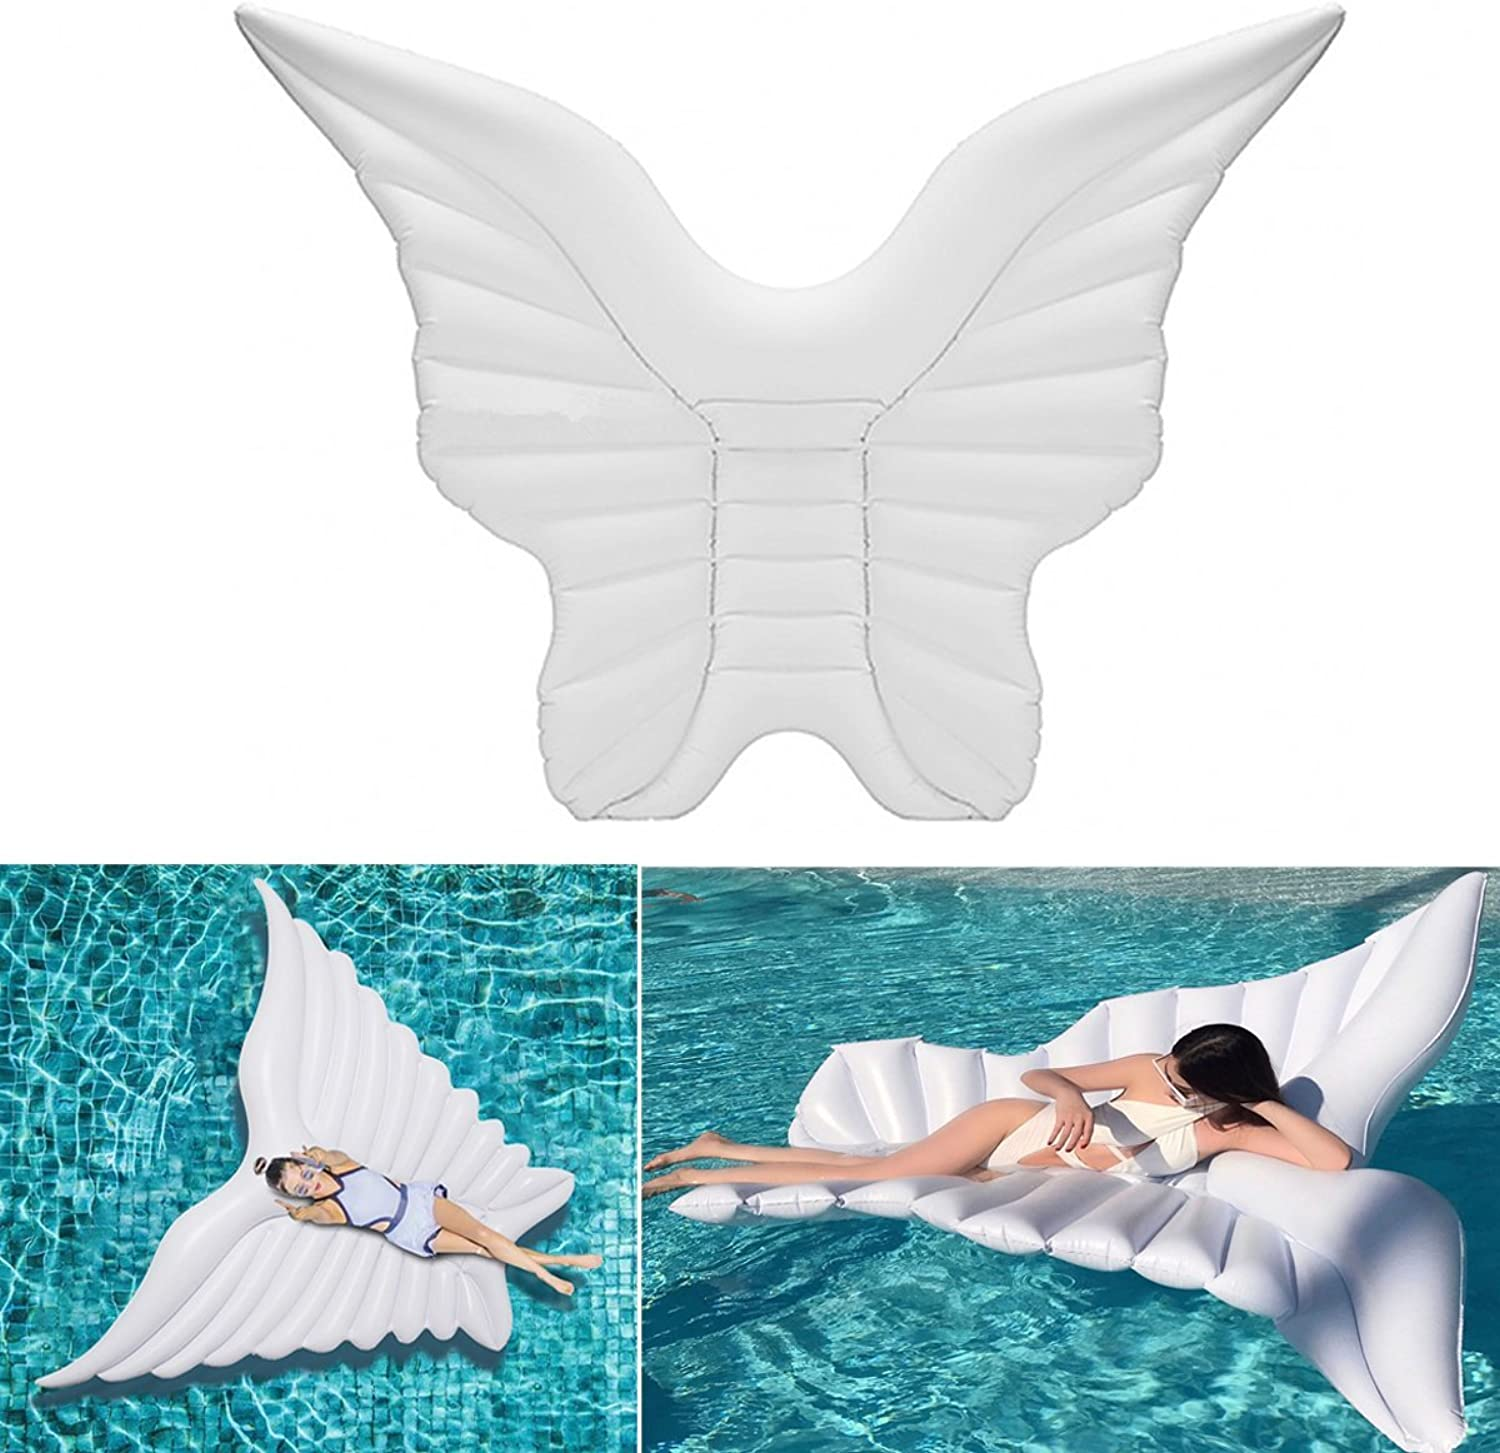 GEOPONICS Angel Wings Water Float Raft Sing Pool Beach Lounger Toy